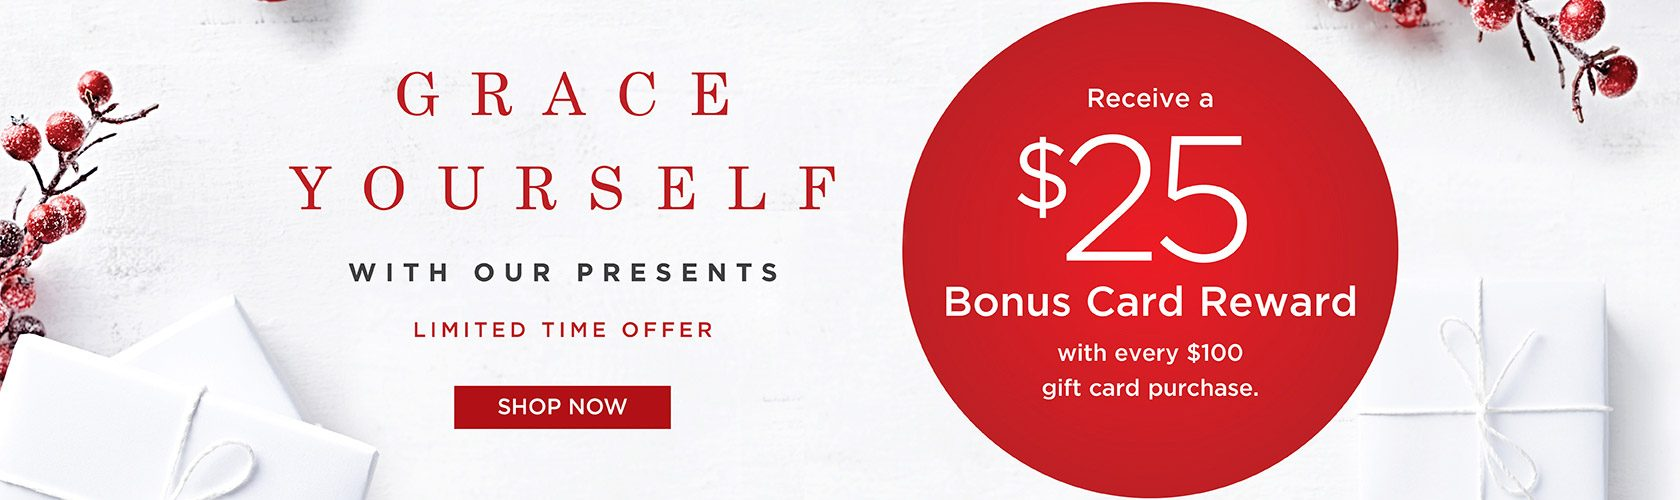 Grace yourself with our presents. Receive a $25 Bonus Card Reward with every $100 gift card purchase. Limited Time offer. Shop Now.